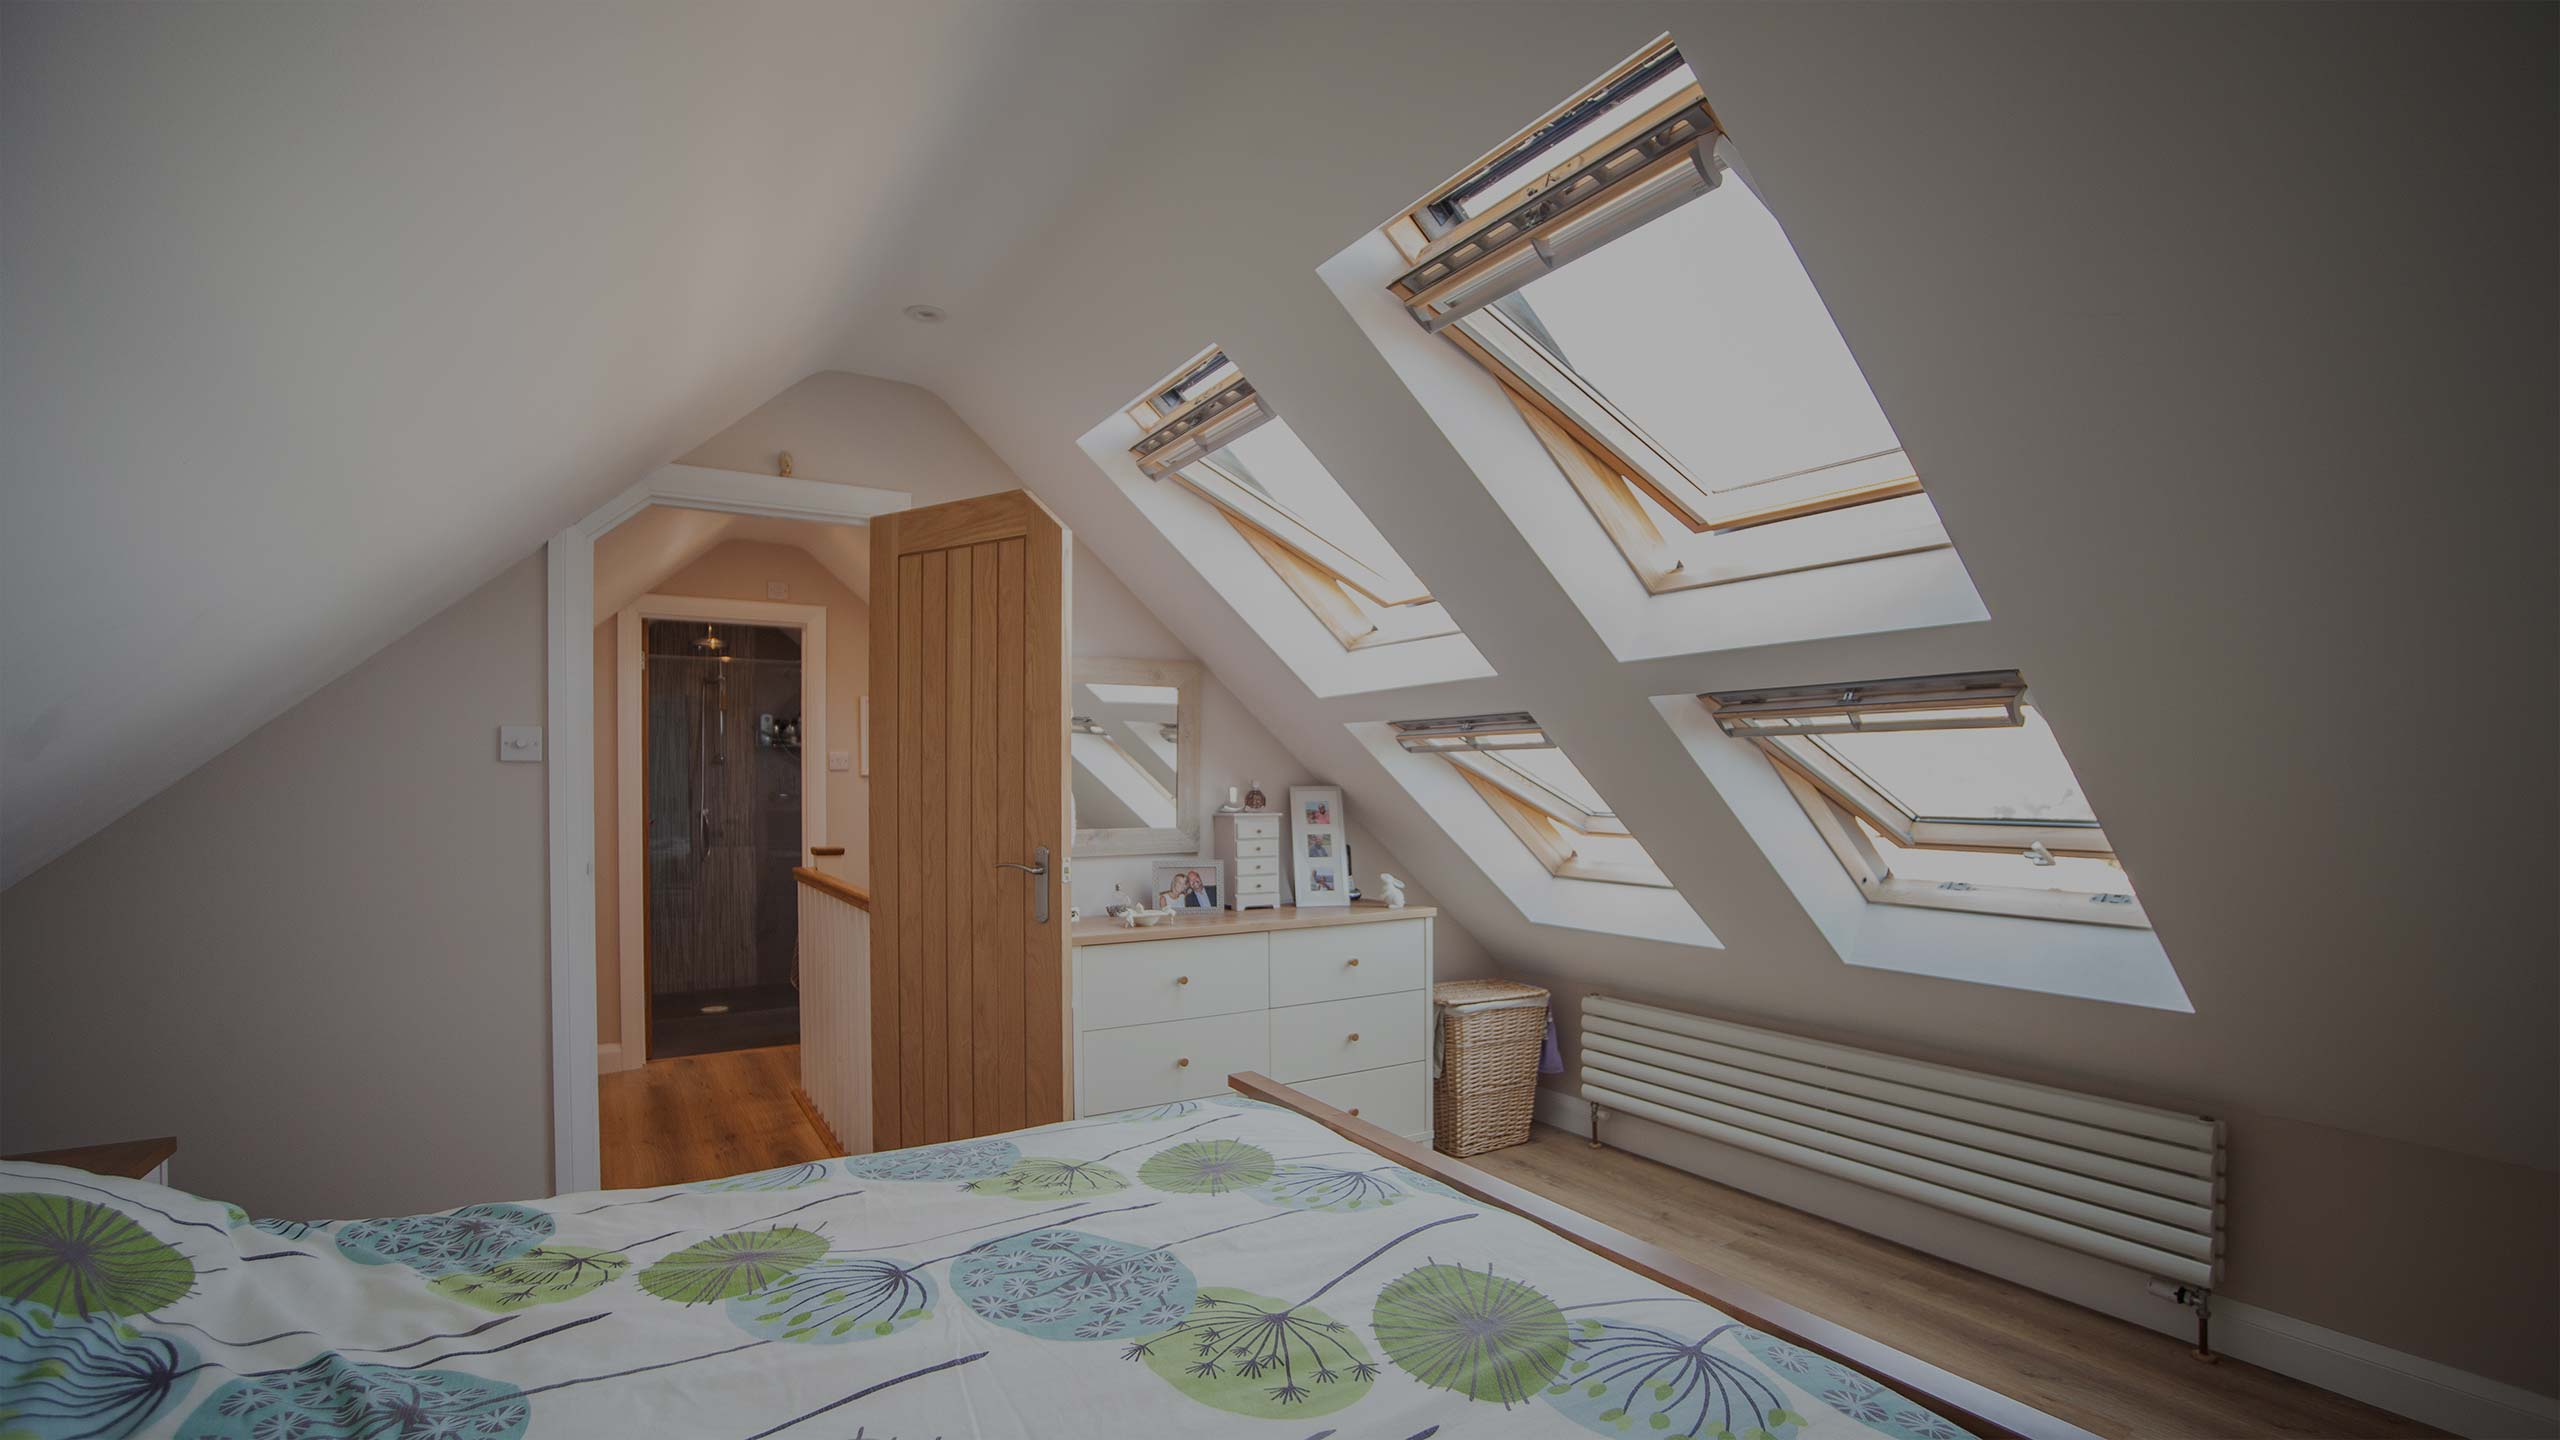 bedroom in the roof - loft conversions by RJ Steeles builders